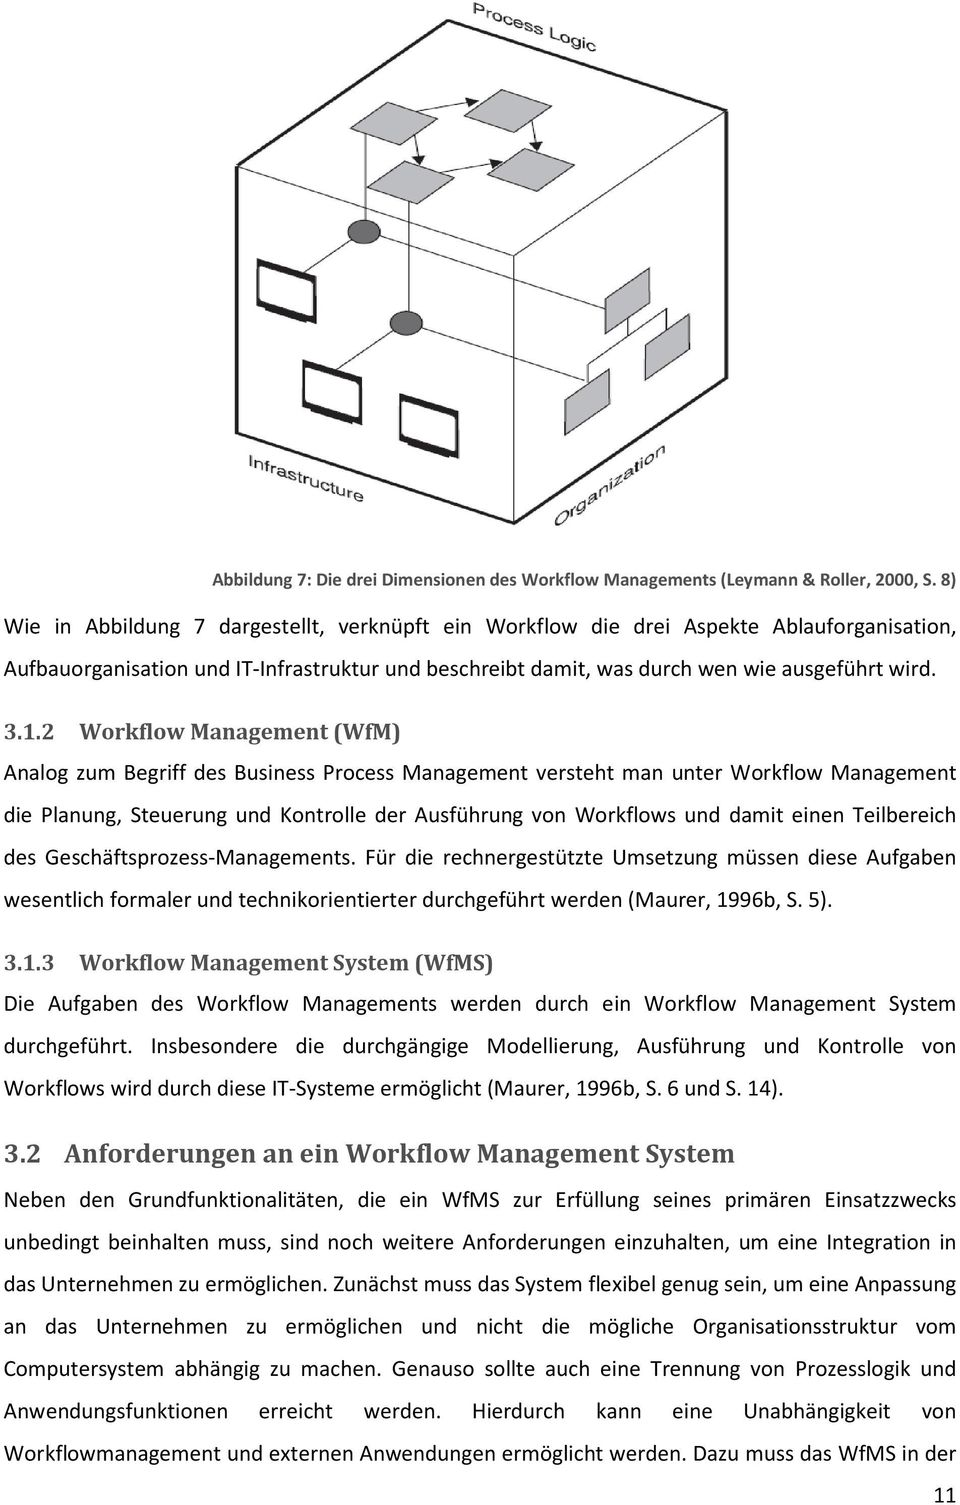 2 Workflow Management (WfM) Analog zum Begriff des Business Process Management versteht man unter Workflow Management die Planung, Steuerung und Kontrolle der Ausführung von Workflows und damit einen